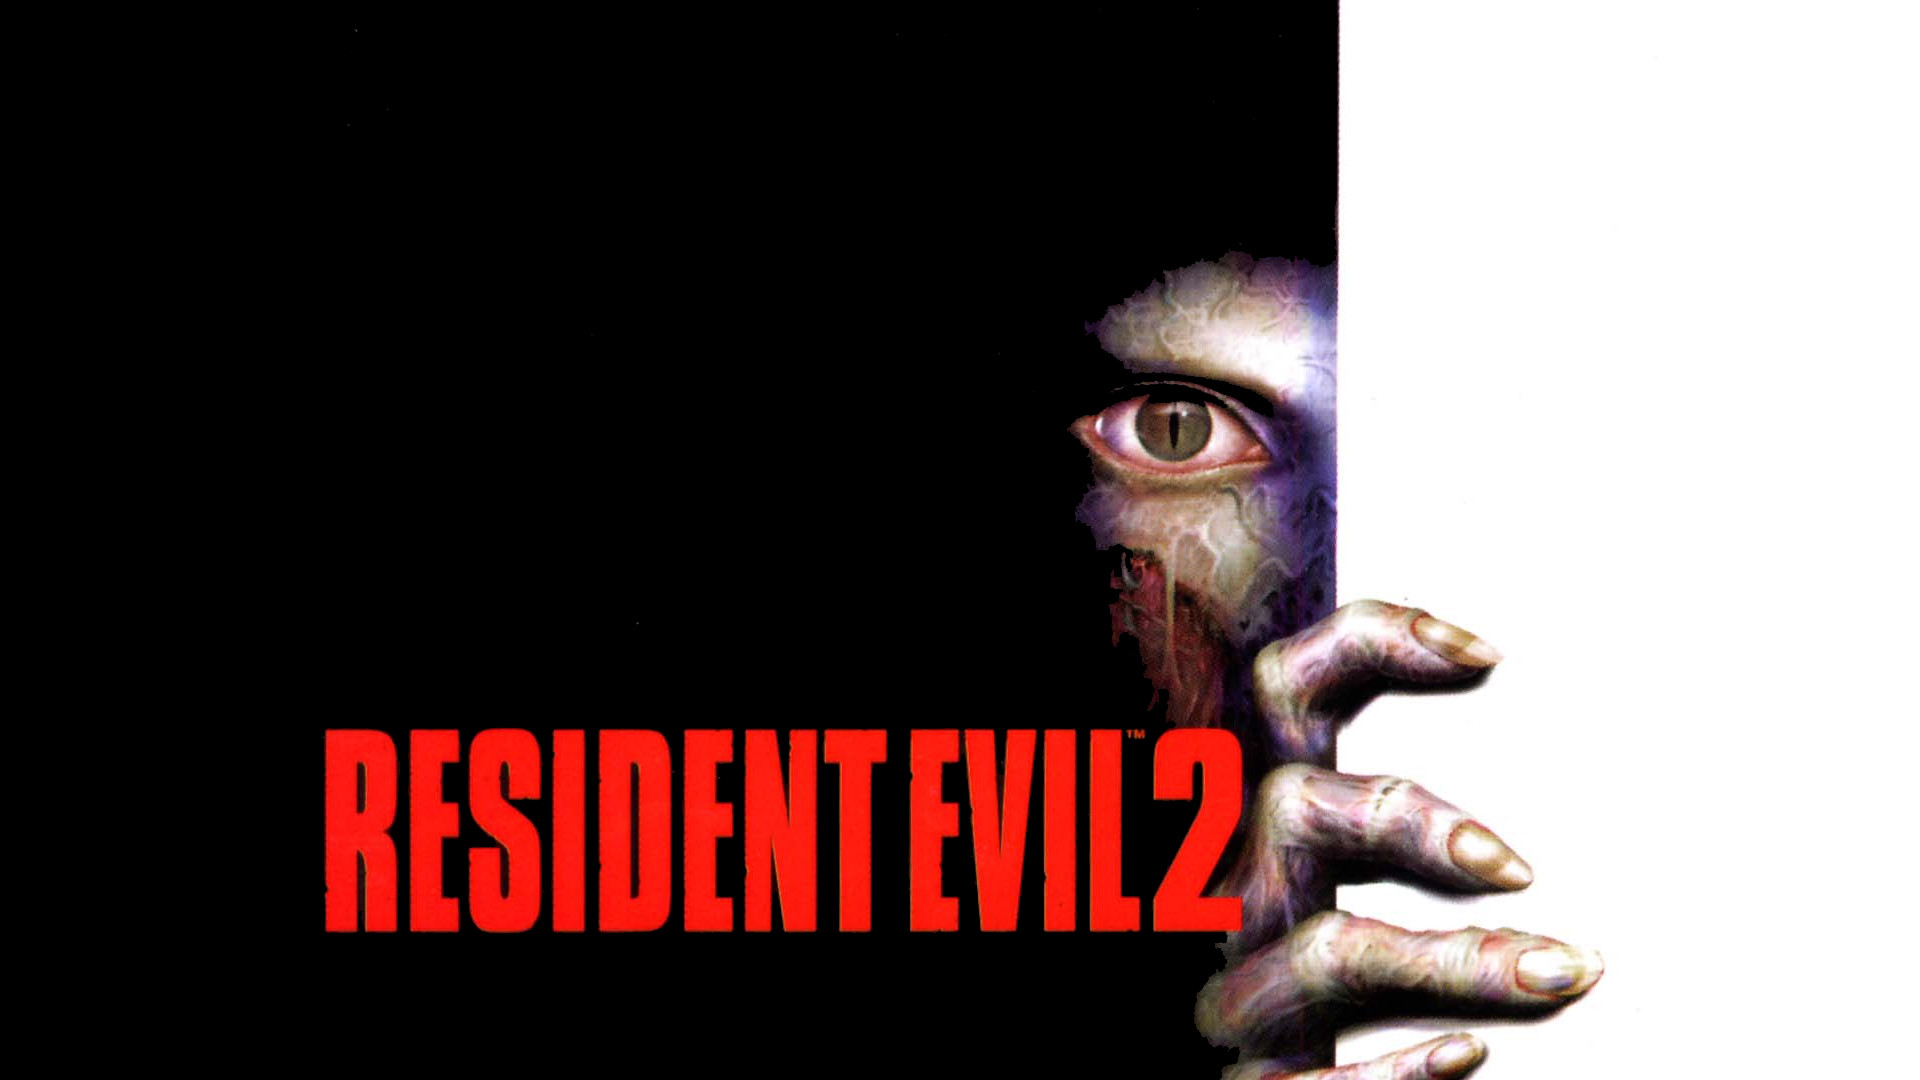 Resident Evil 2 Wallpapers ·① WallpaperTag